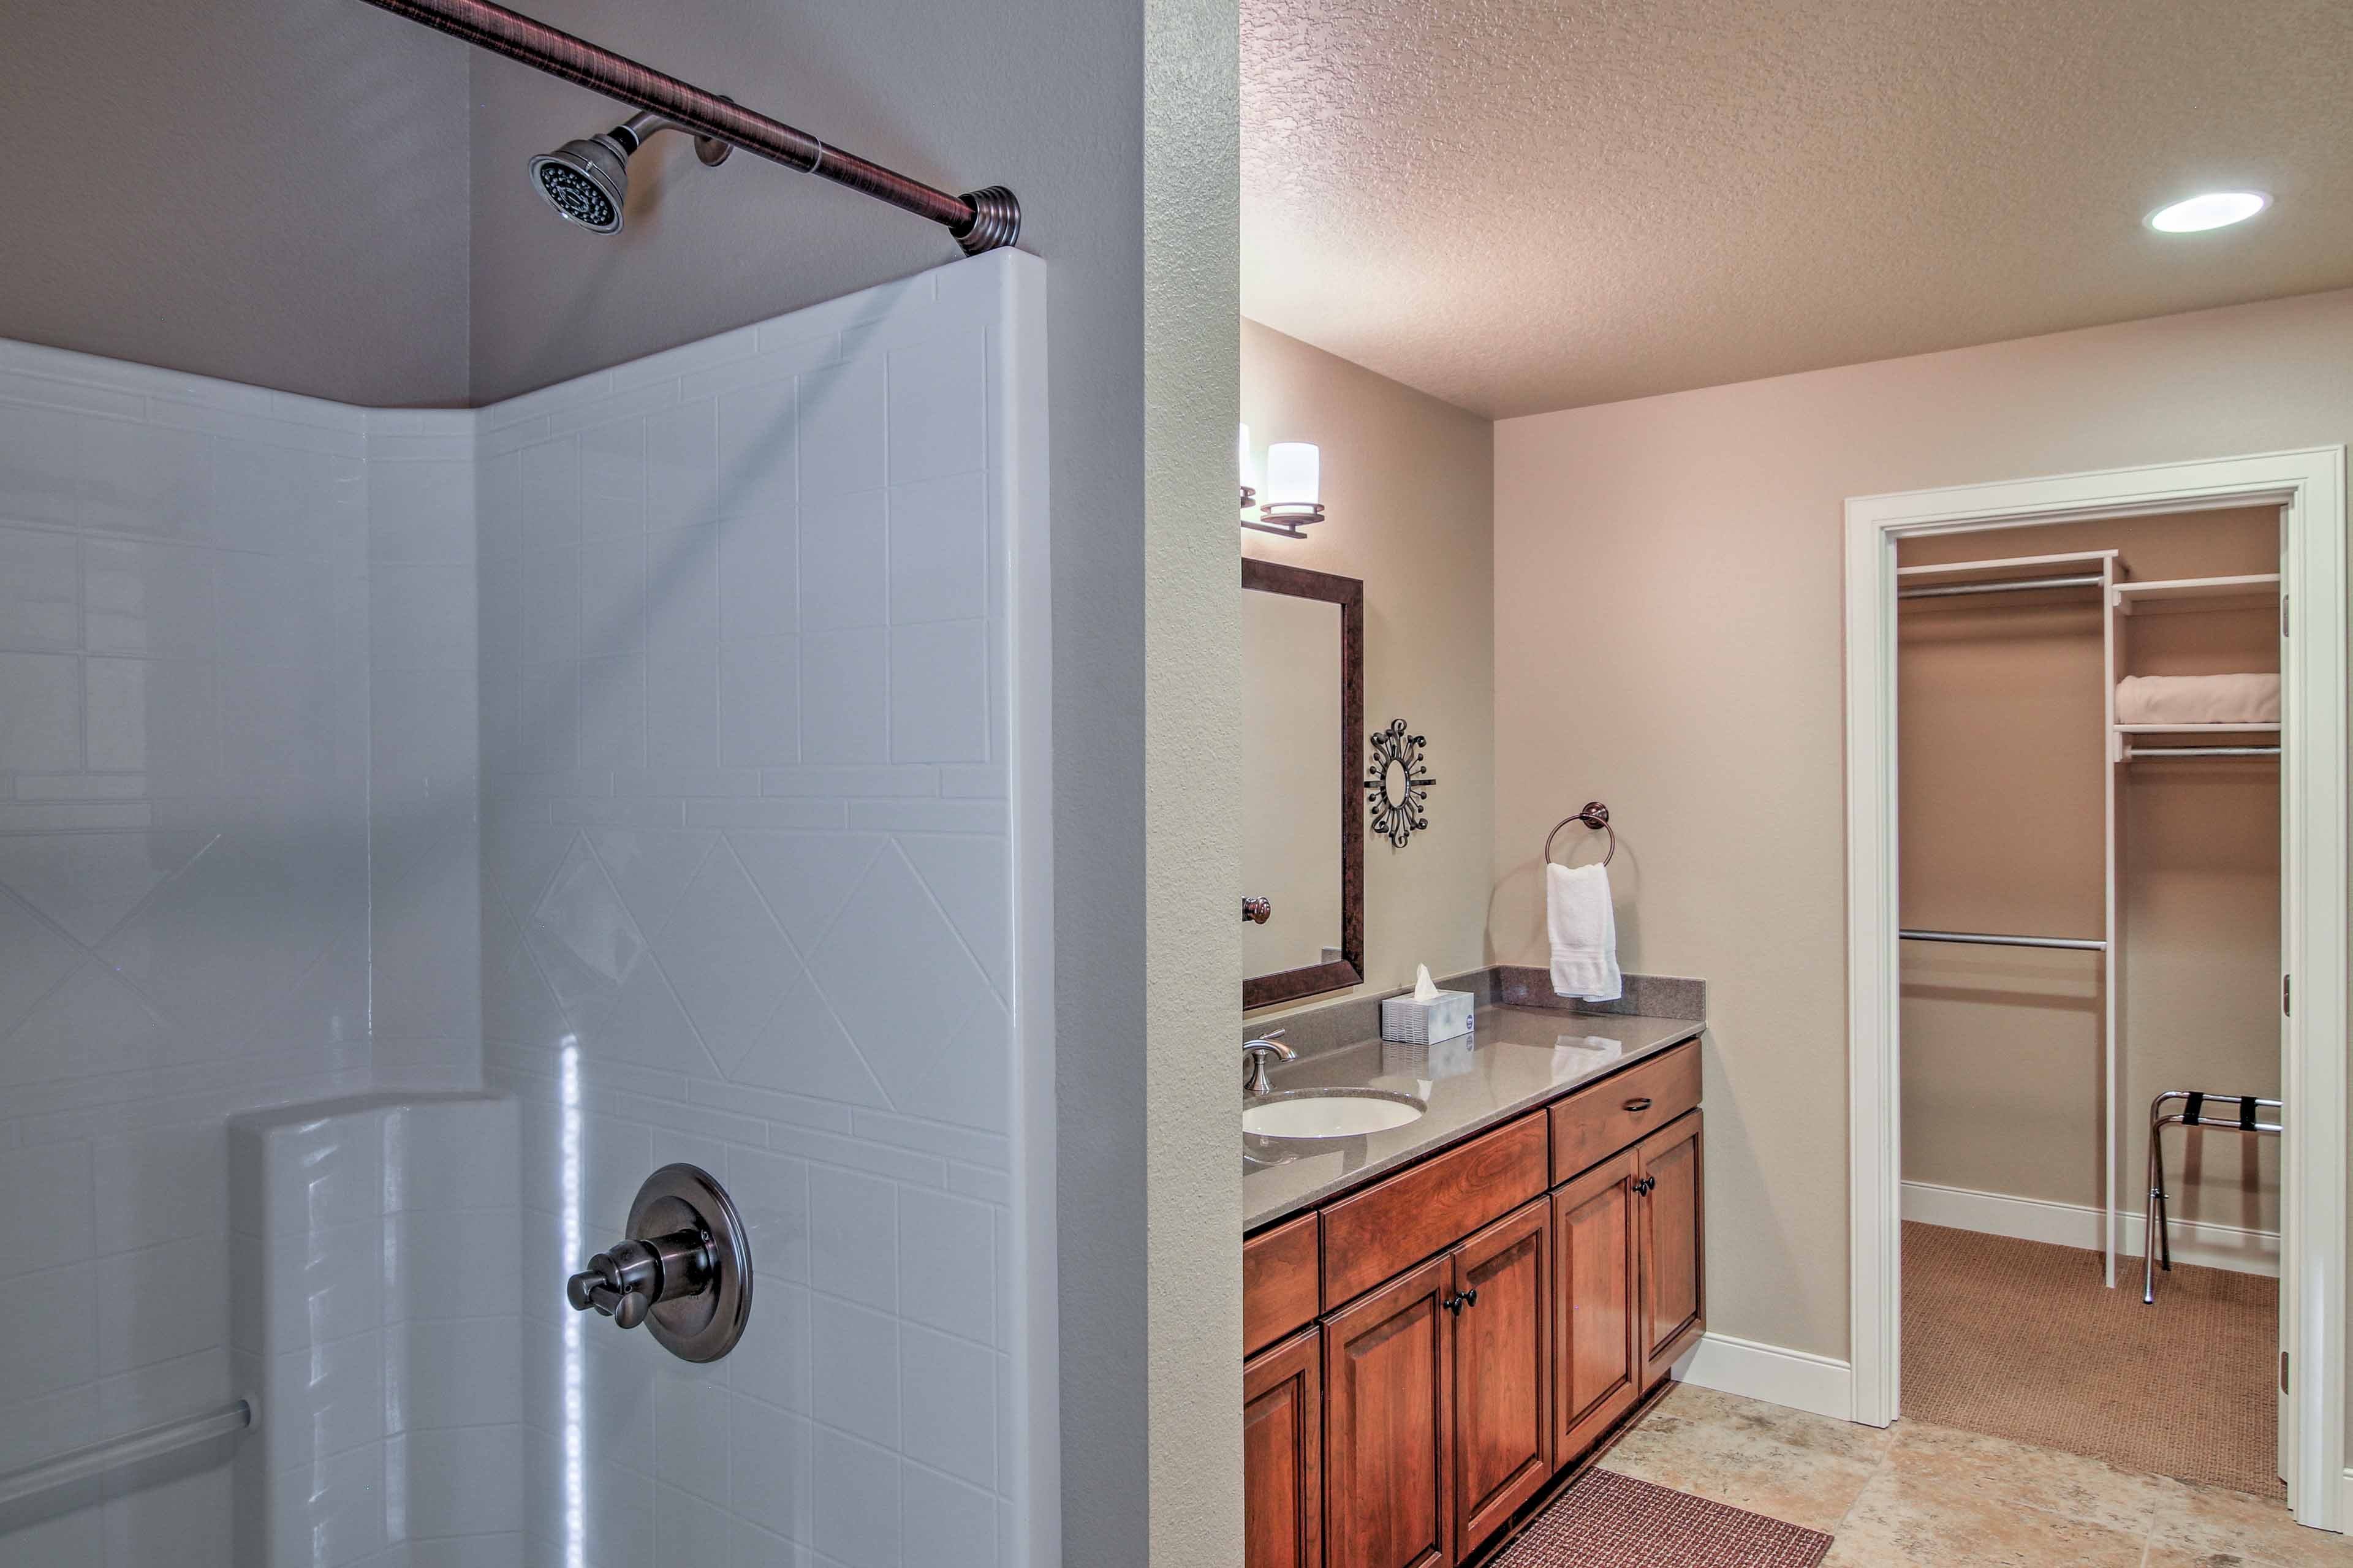 Utilize the walk-in shower and large vanity featured in the second bathroom.